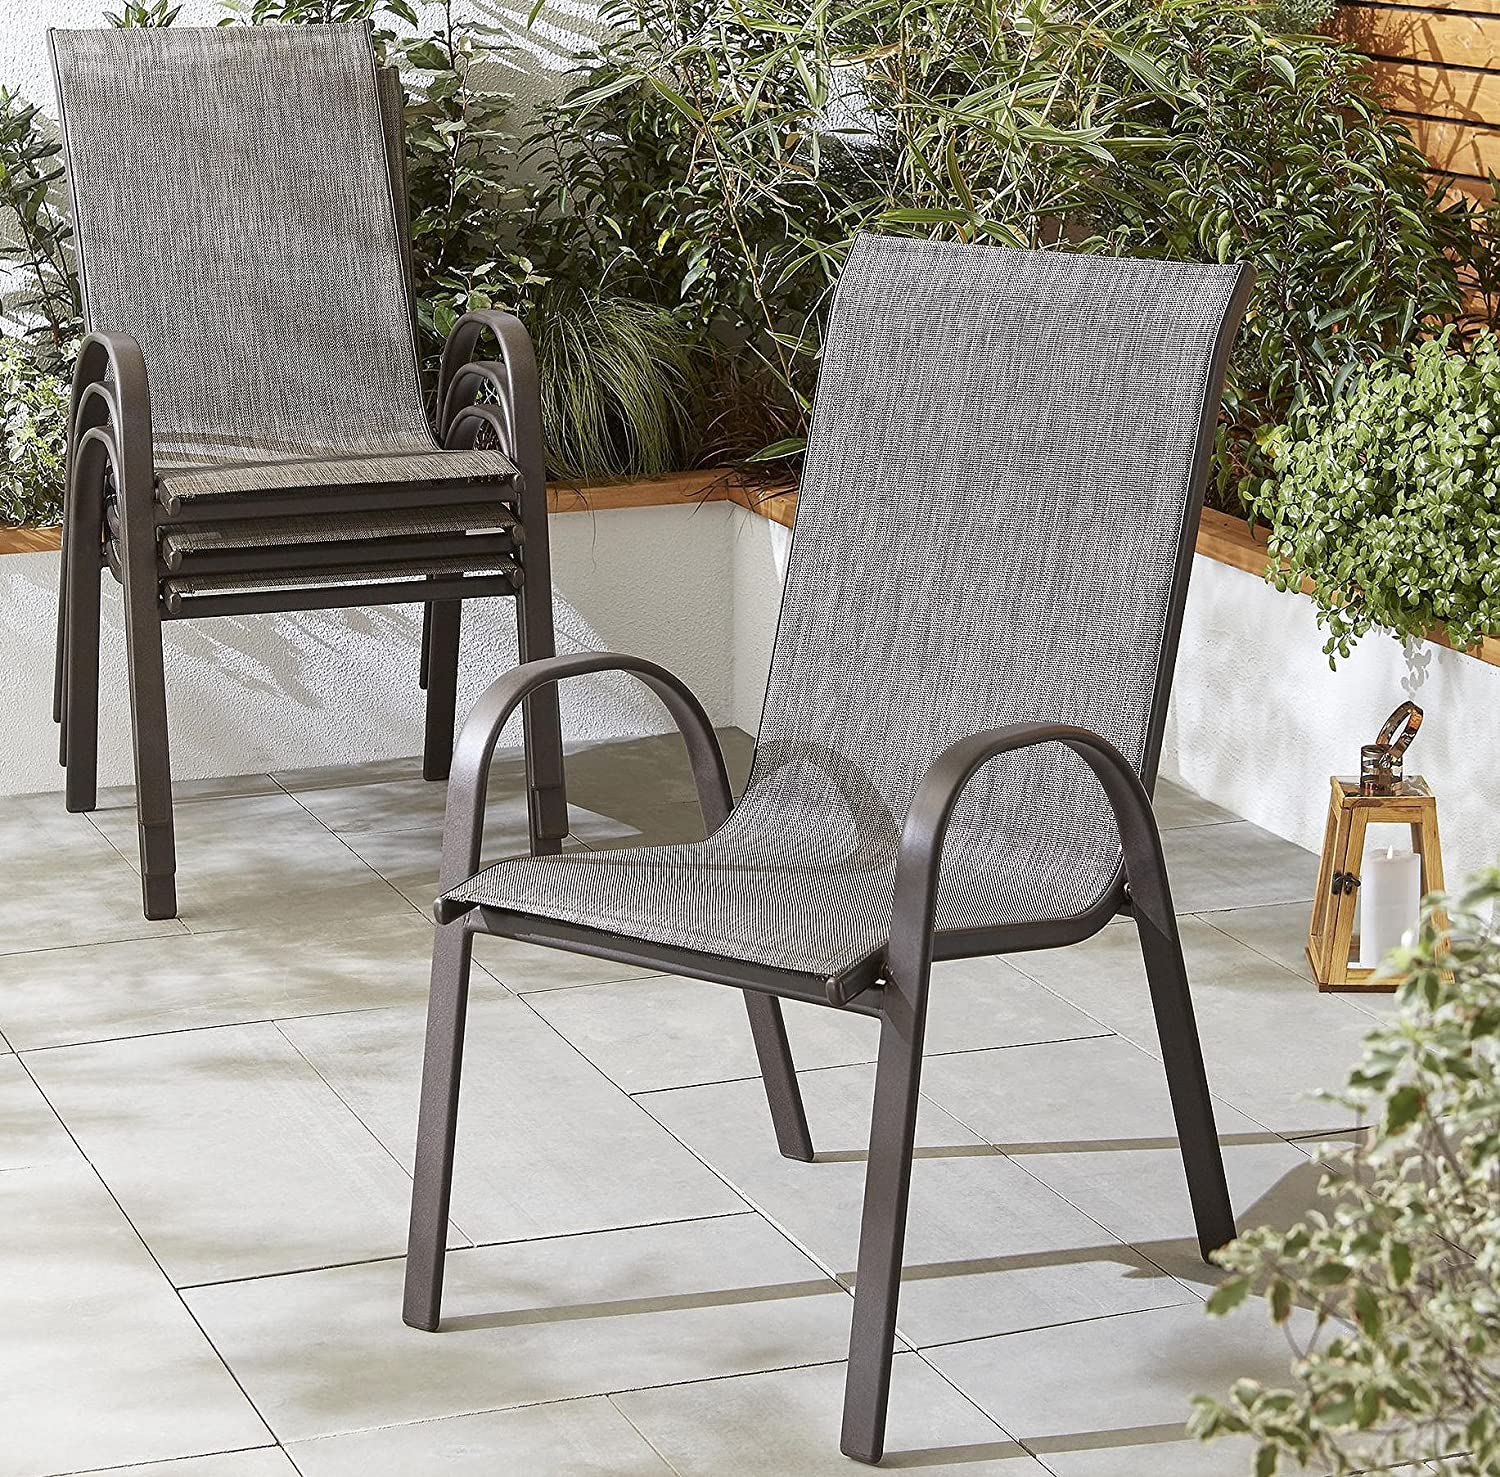 Tesco NEW Seville Steel Frame Stackable Garden Chair - (10 Pack